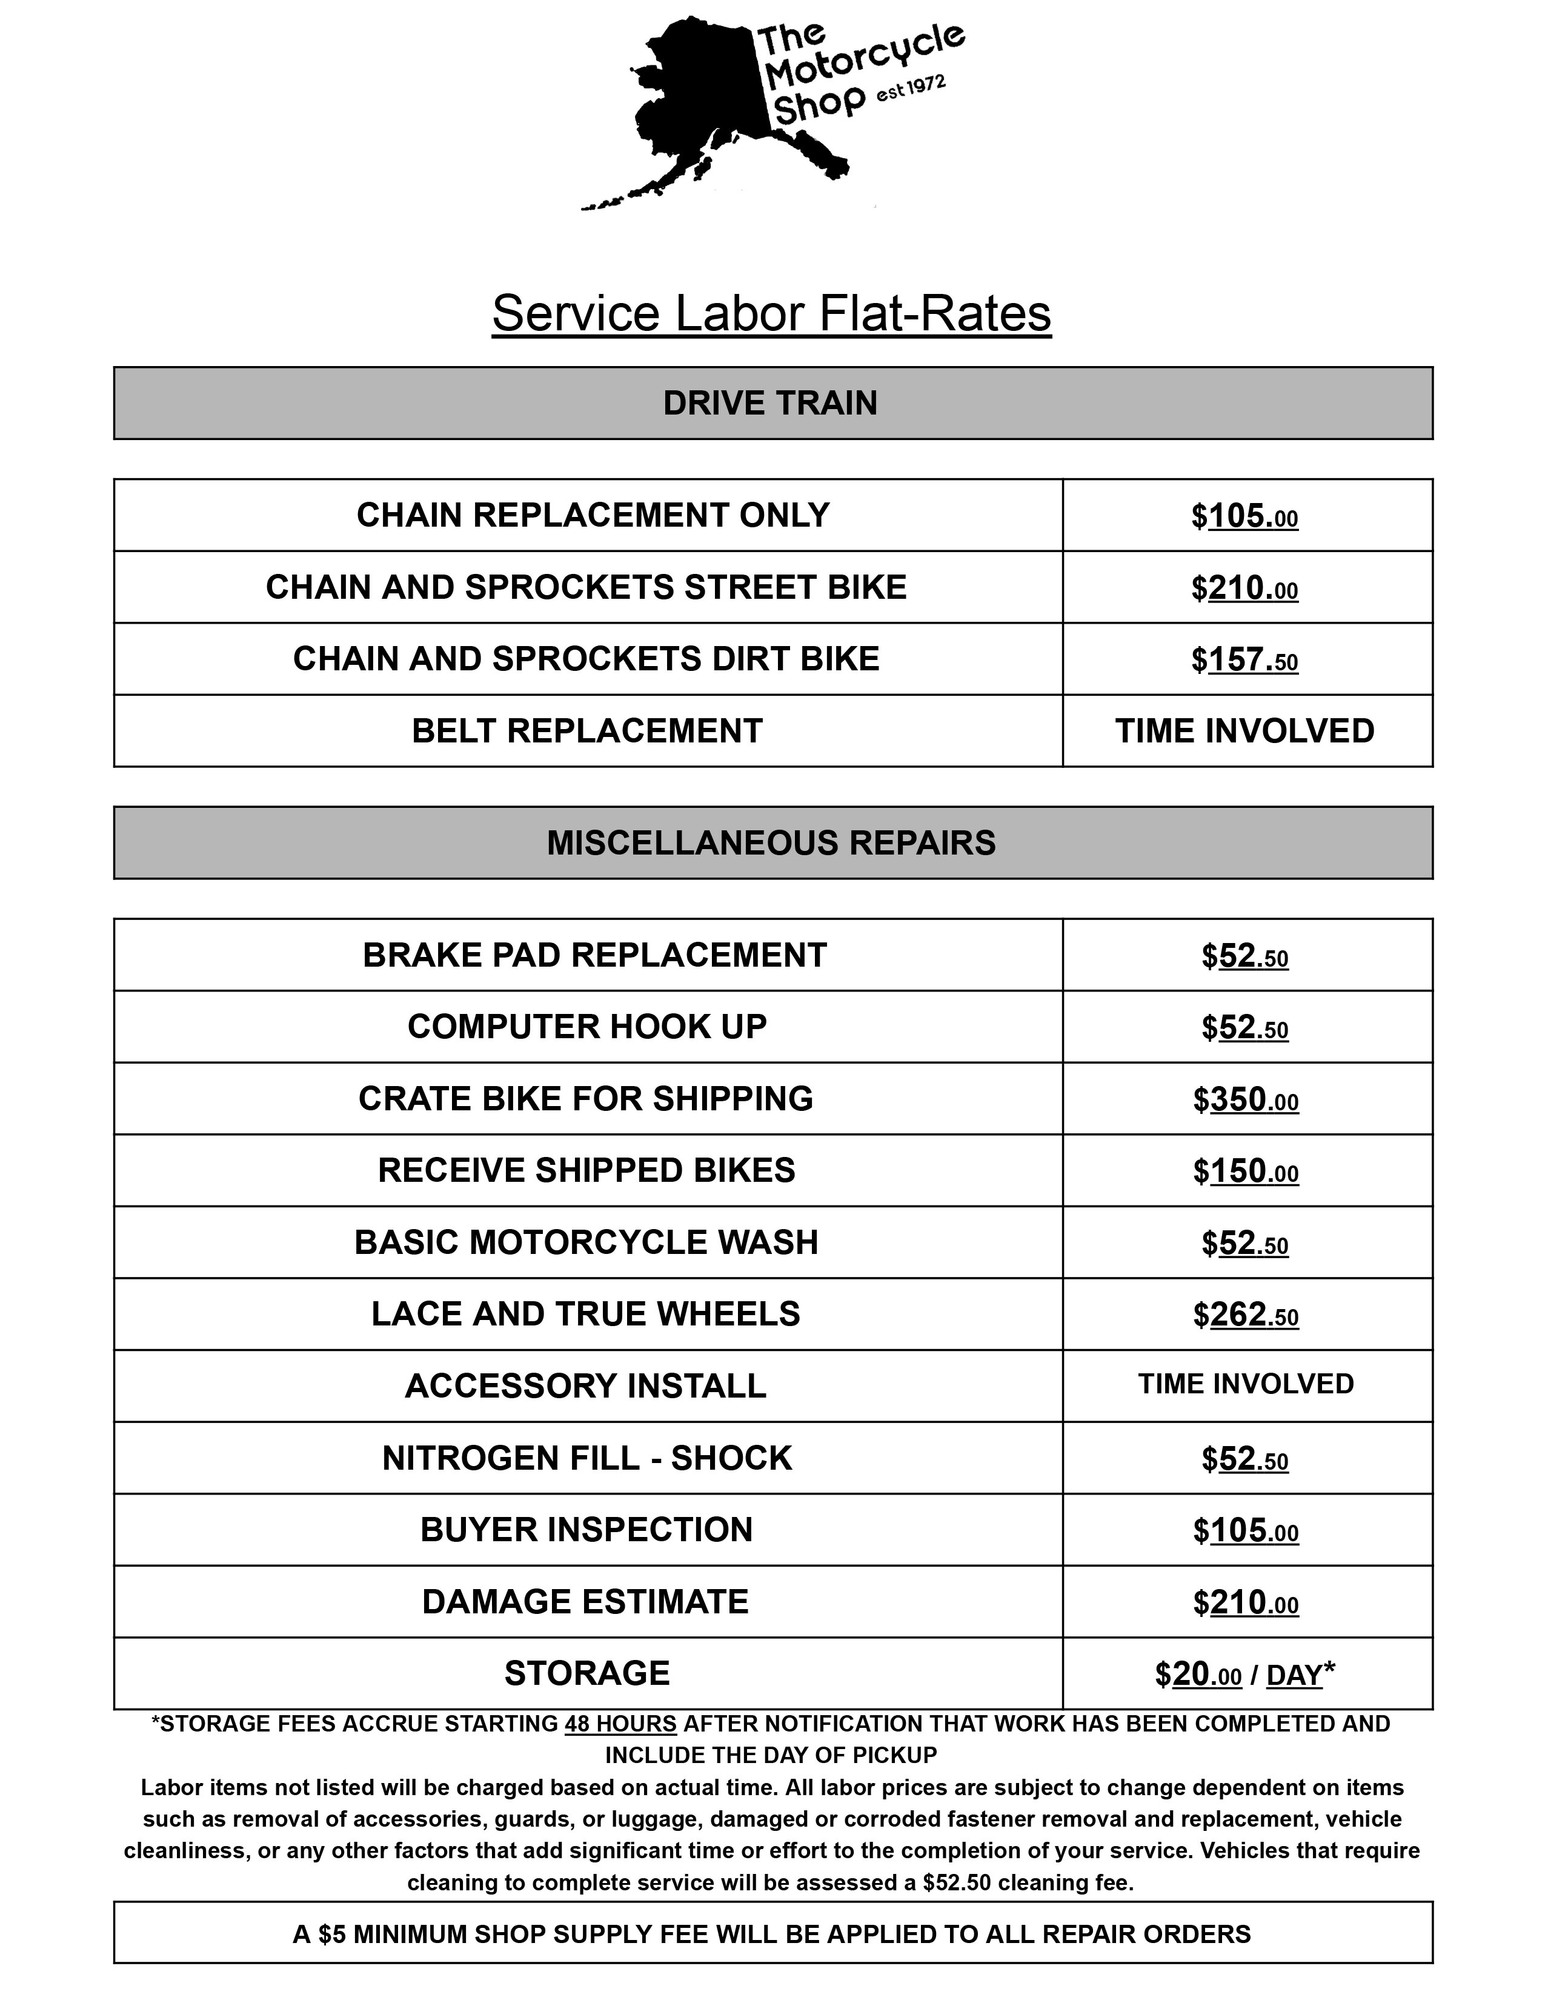 The Motorcycle Shop Service Labor Rates